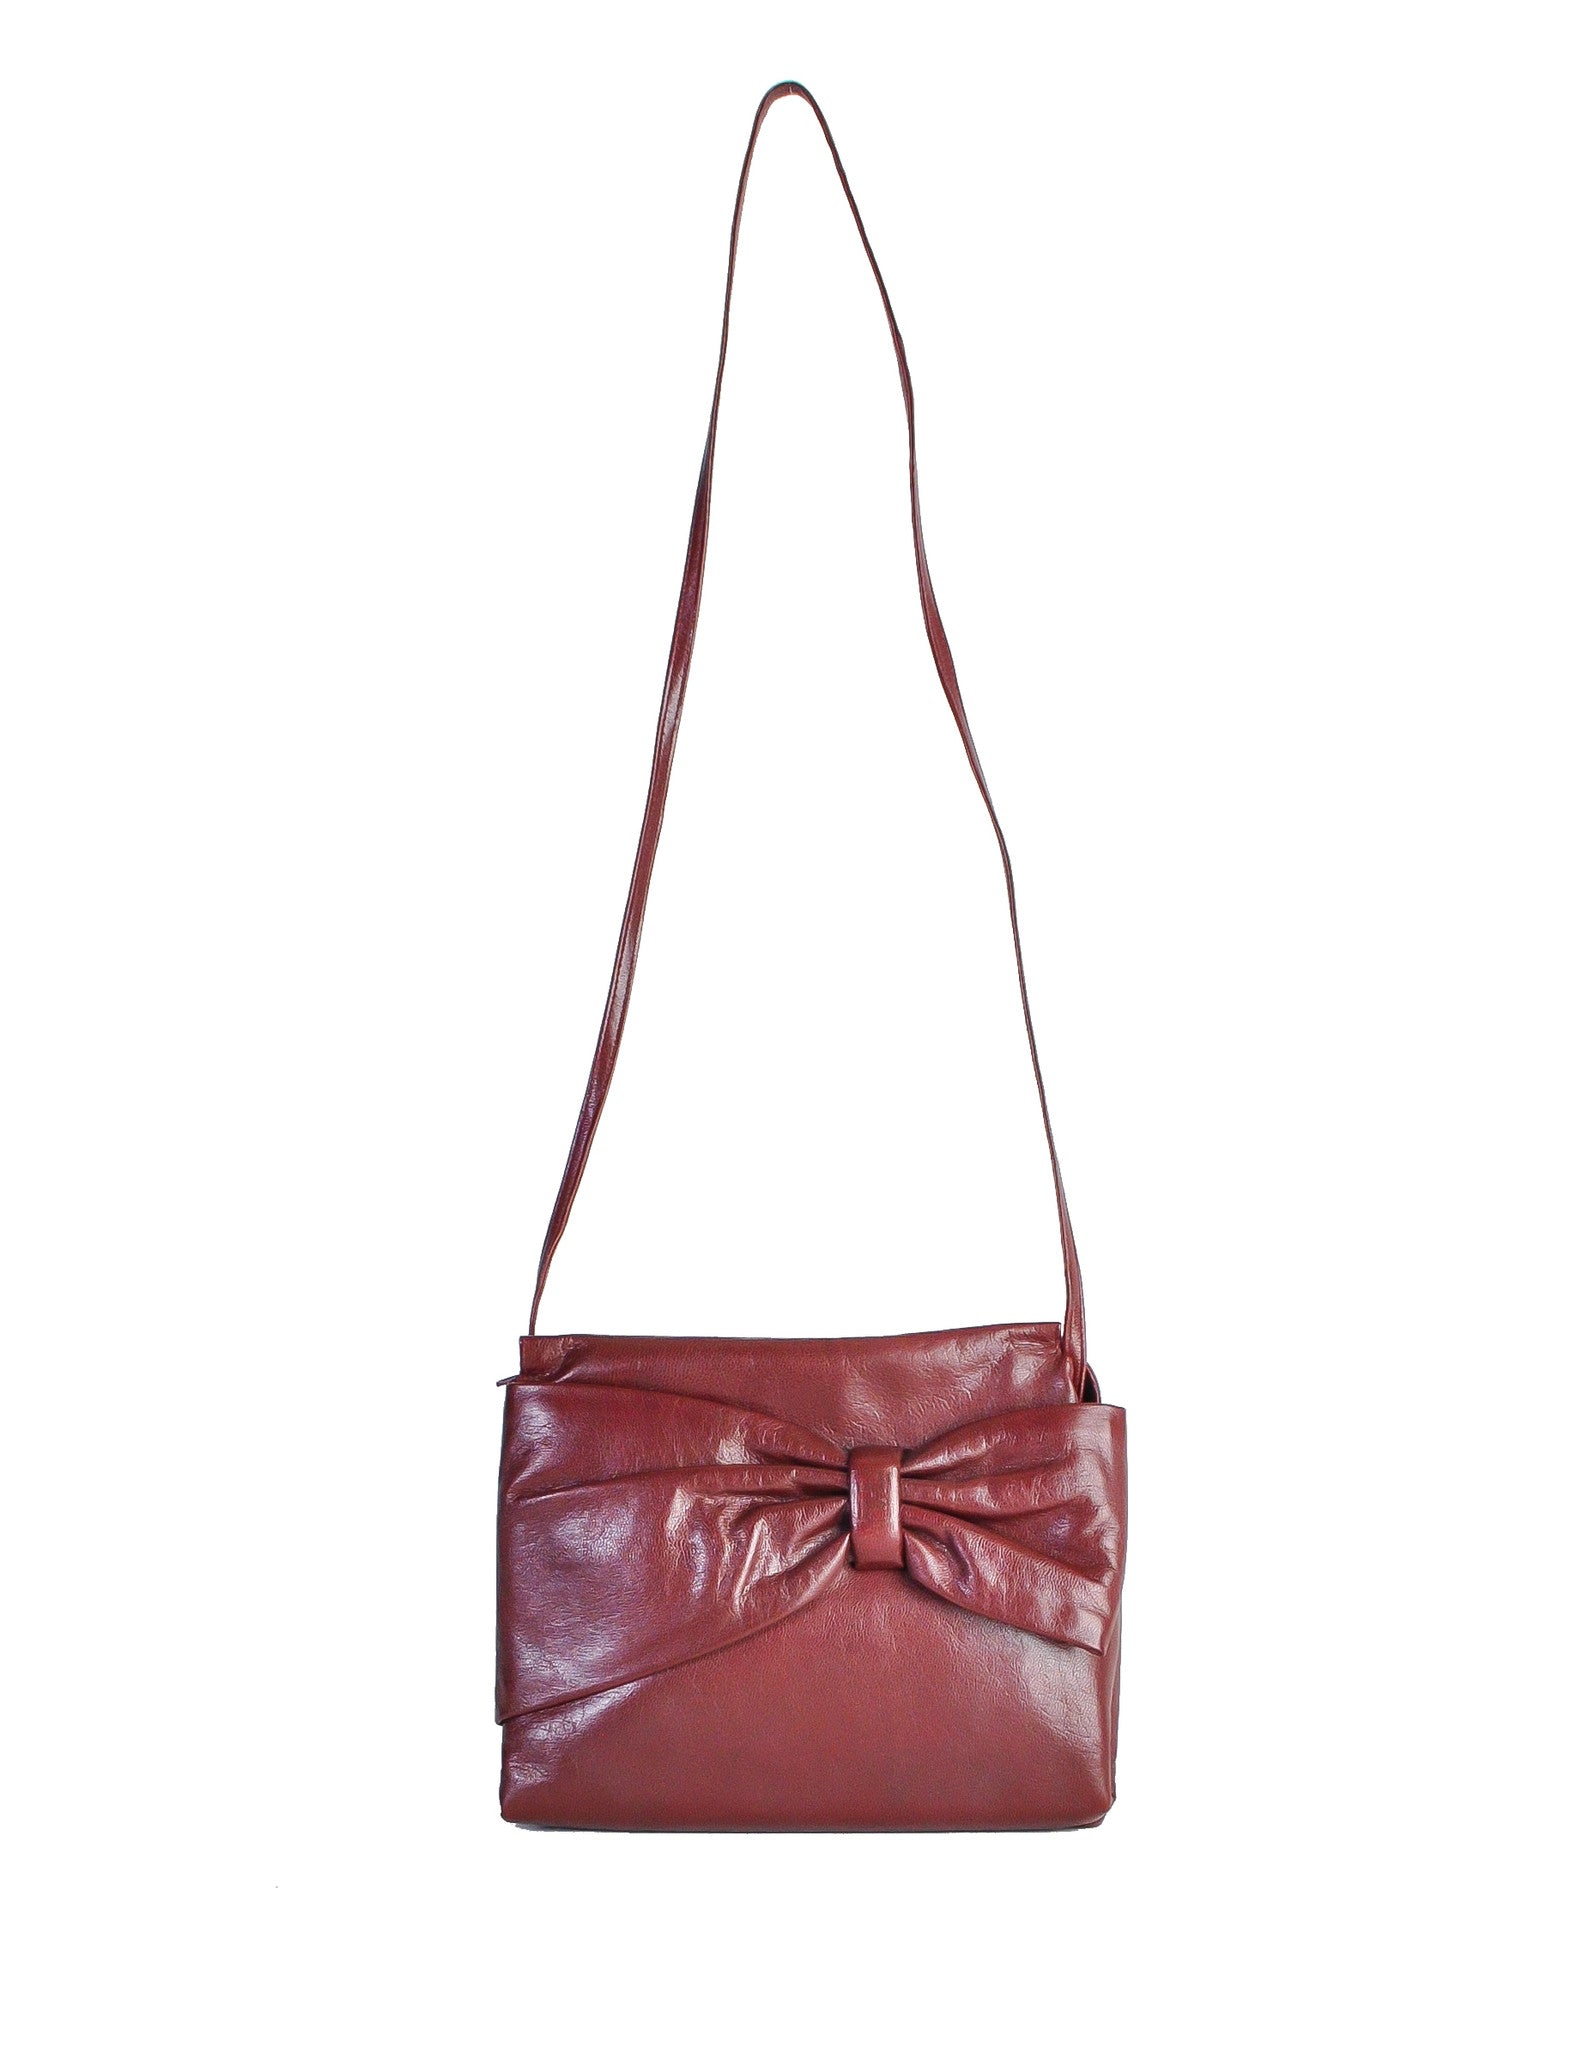 Fendi Vintage Burgundy Leather Bow Front Bag - Amarcord Vintage Fashion  - 1